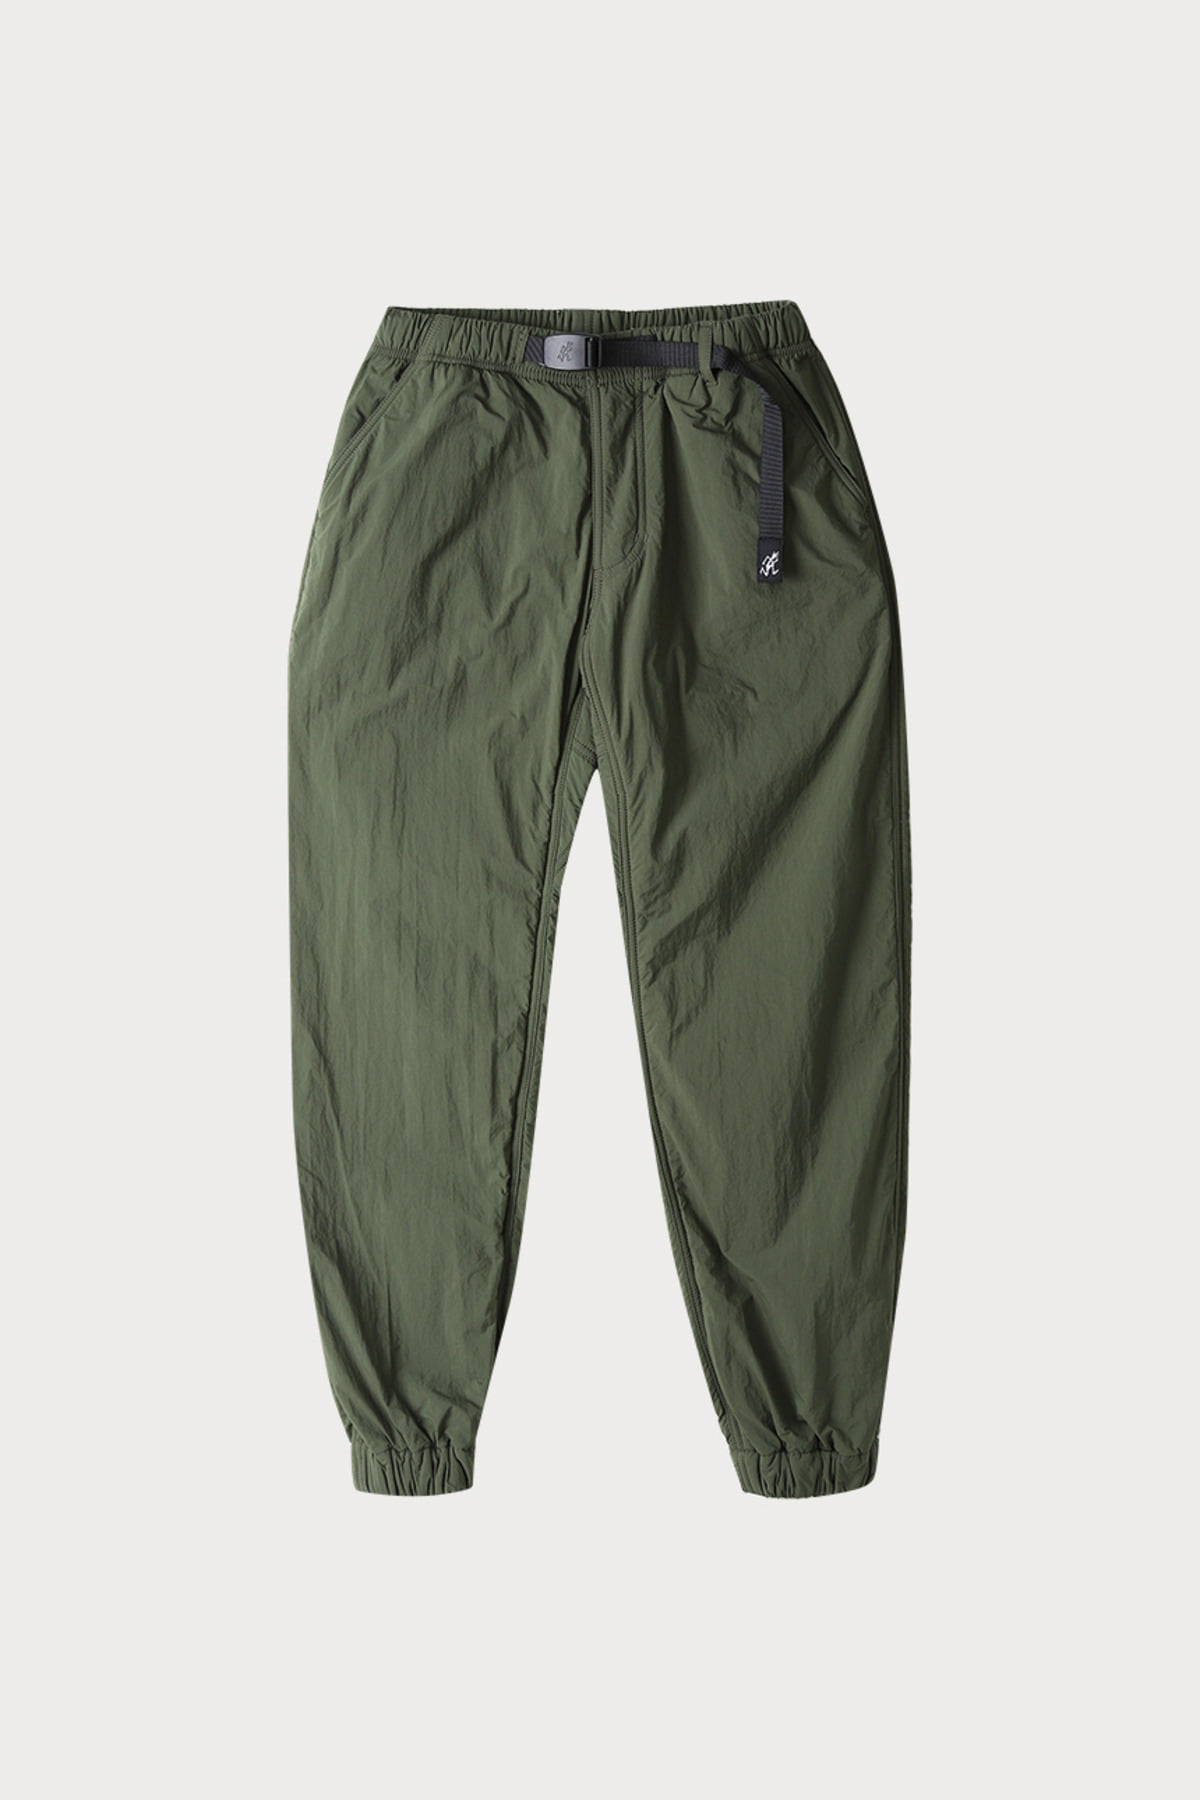 NYLON FLEECE PANTS OLIVE